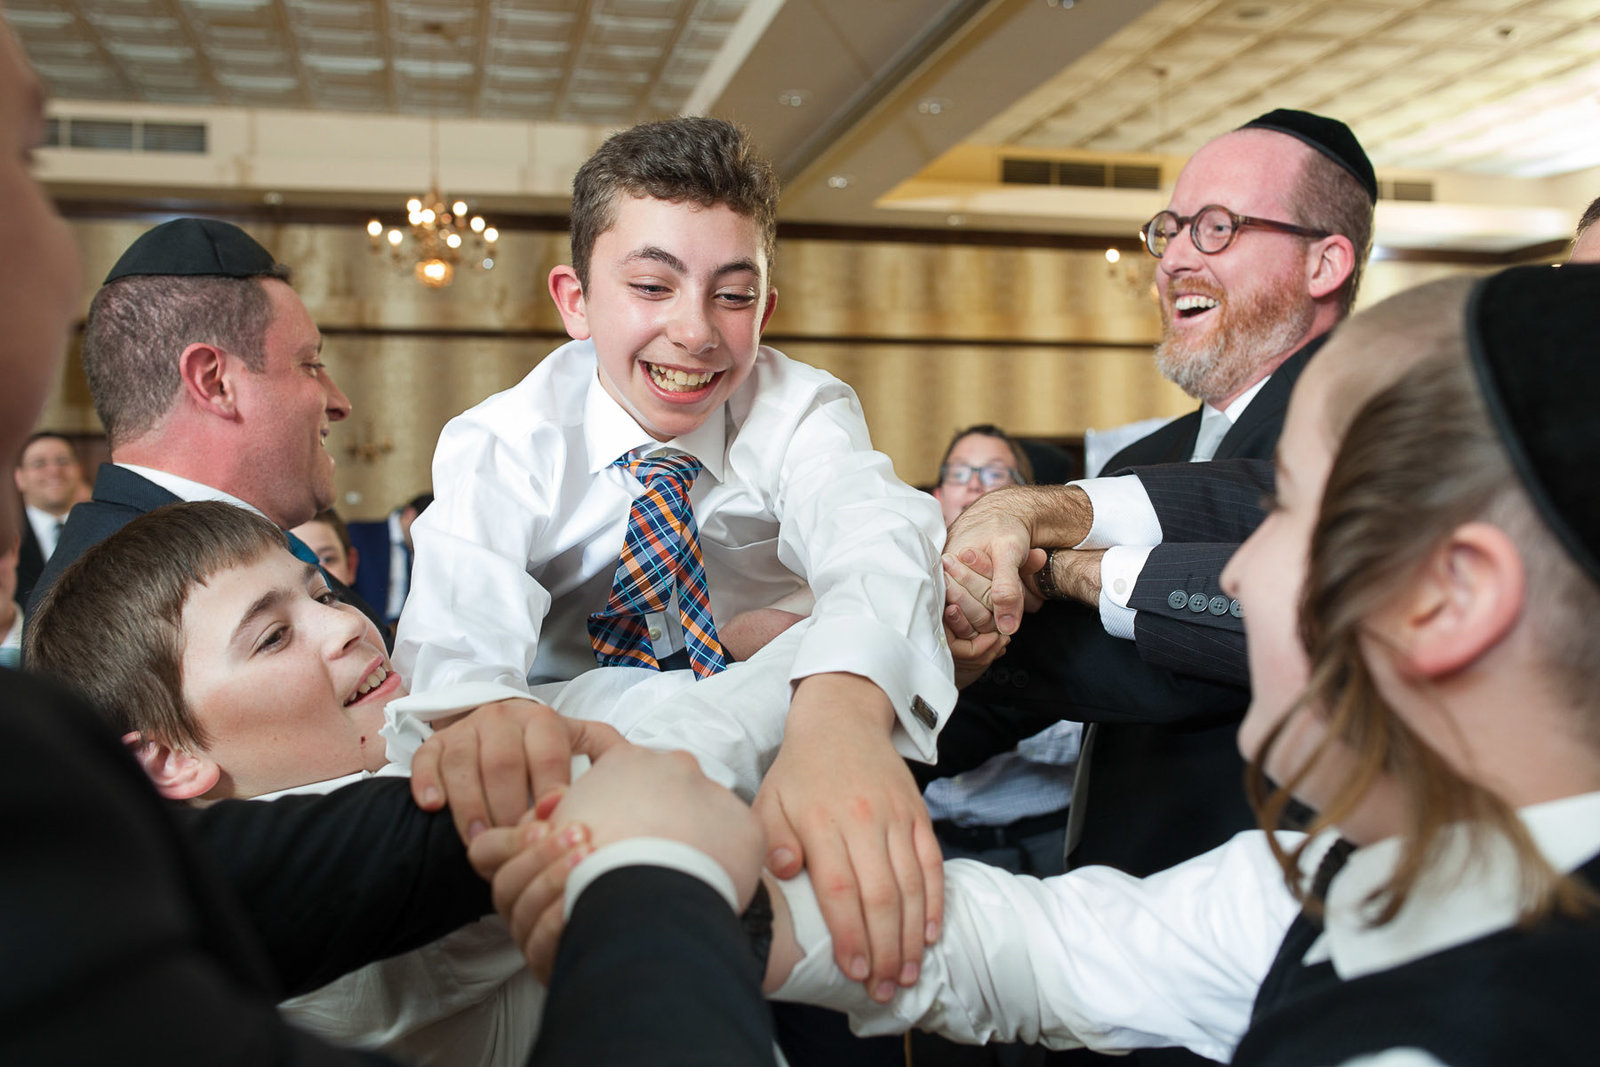 Jewish-Bar-Bat-Mitzvah-Event-Photography-20160321-1425